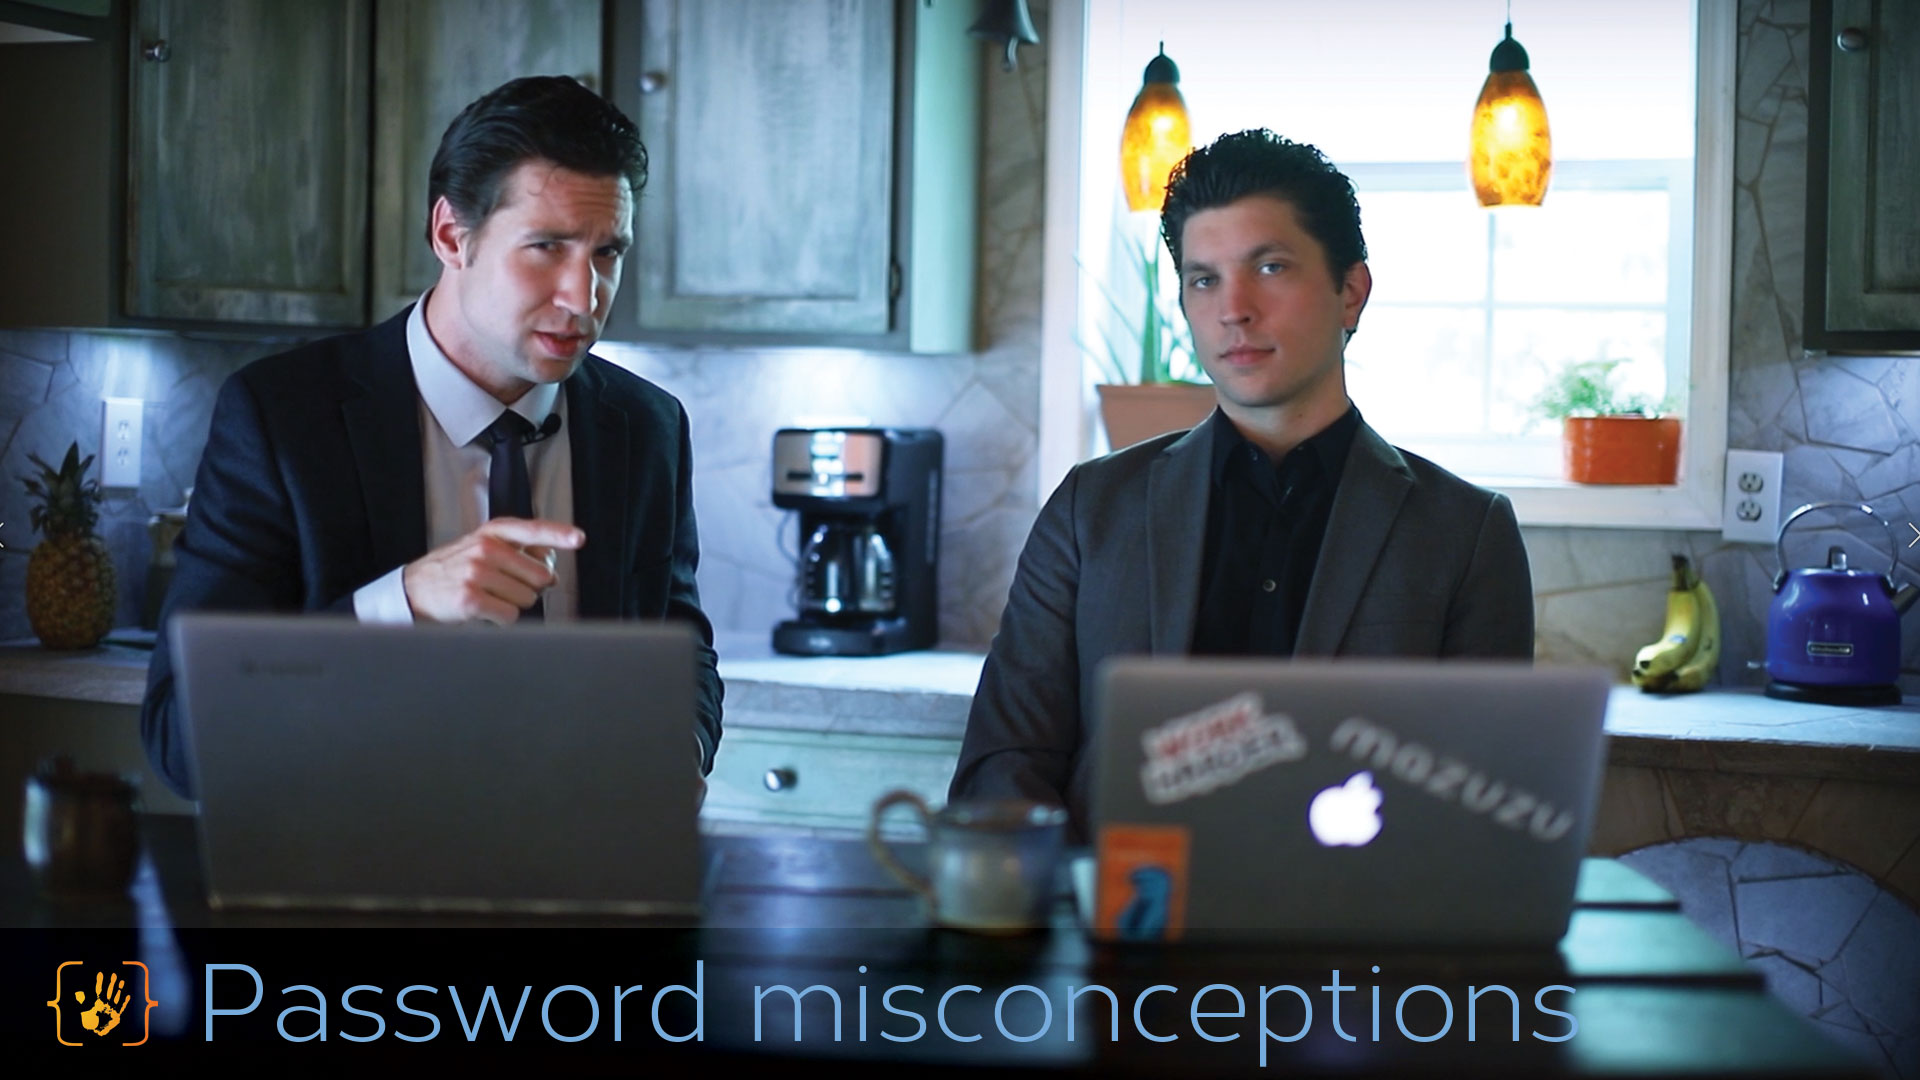 Watch Password misconceptions - You may not be as safe as you think on Youtube